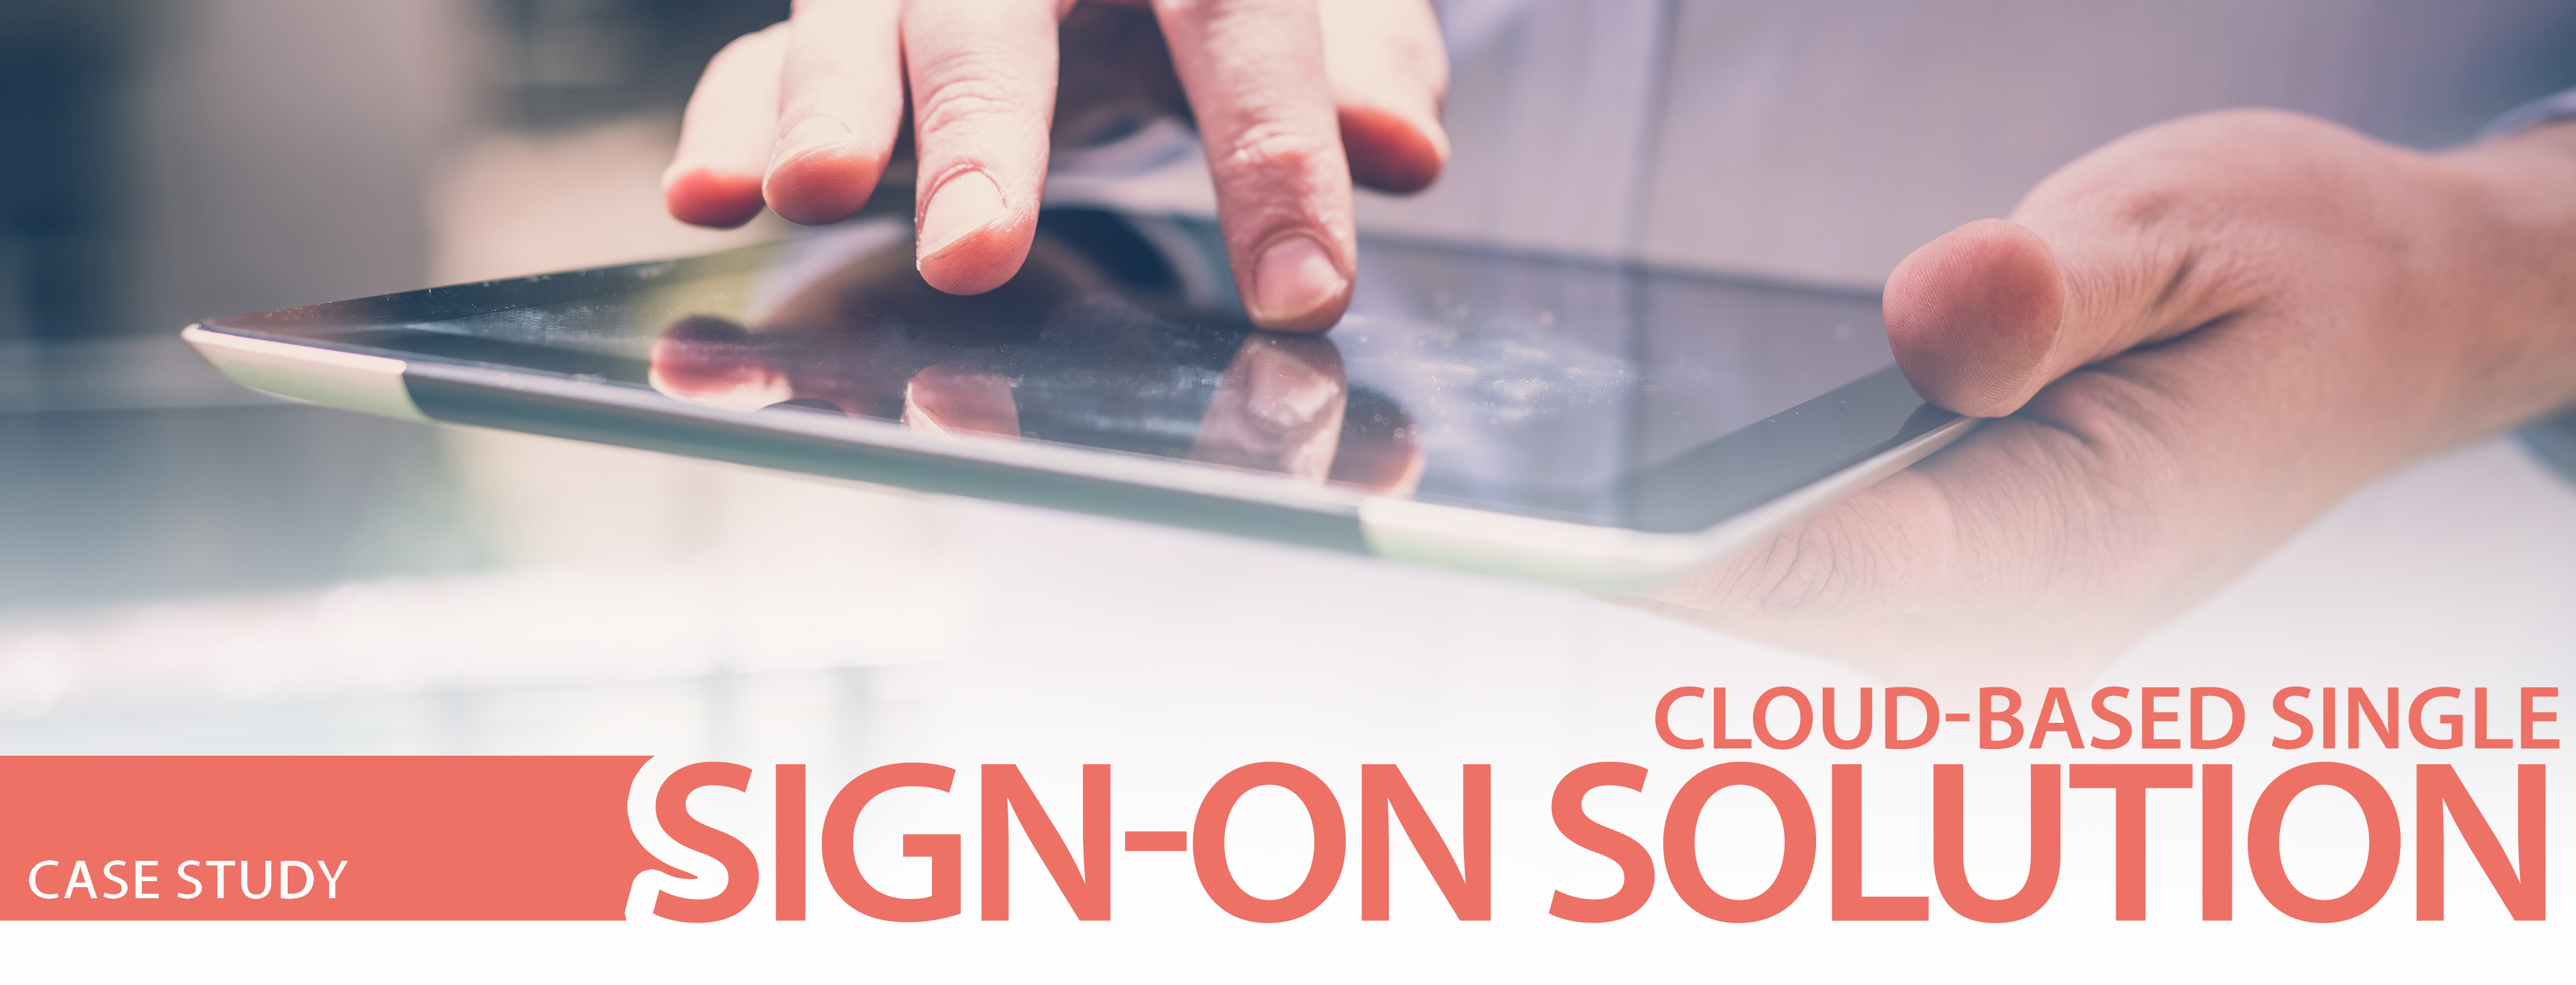 cloud-based single sign-on solution case study icon